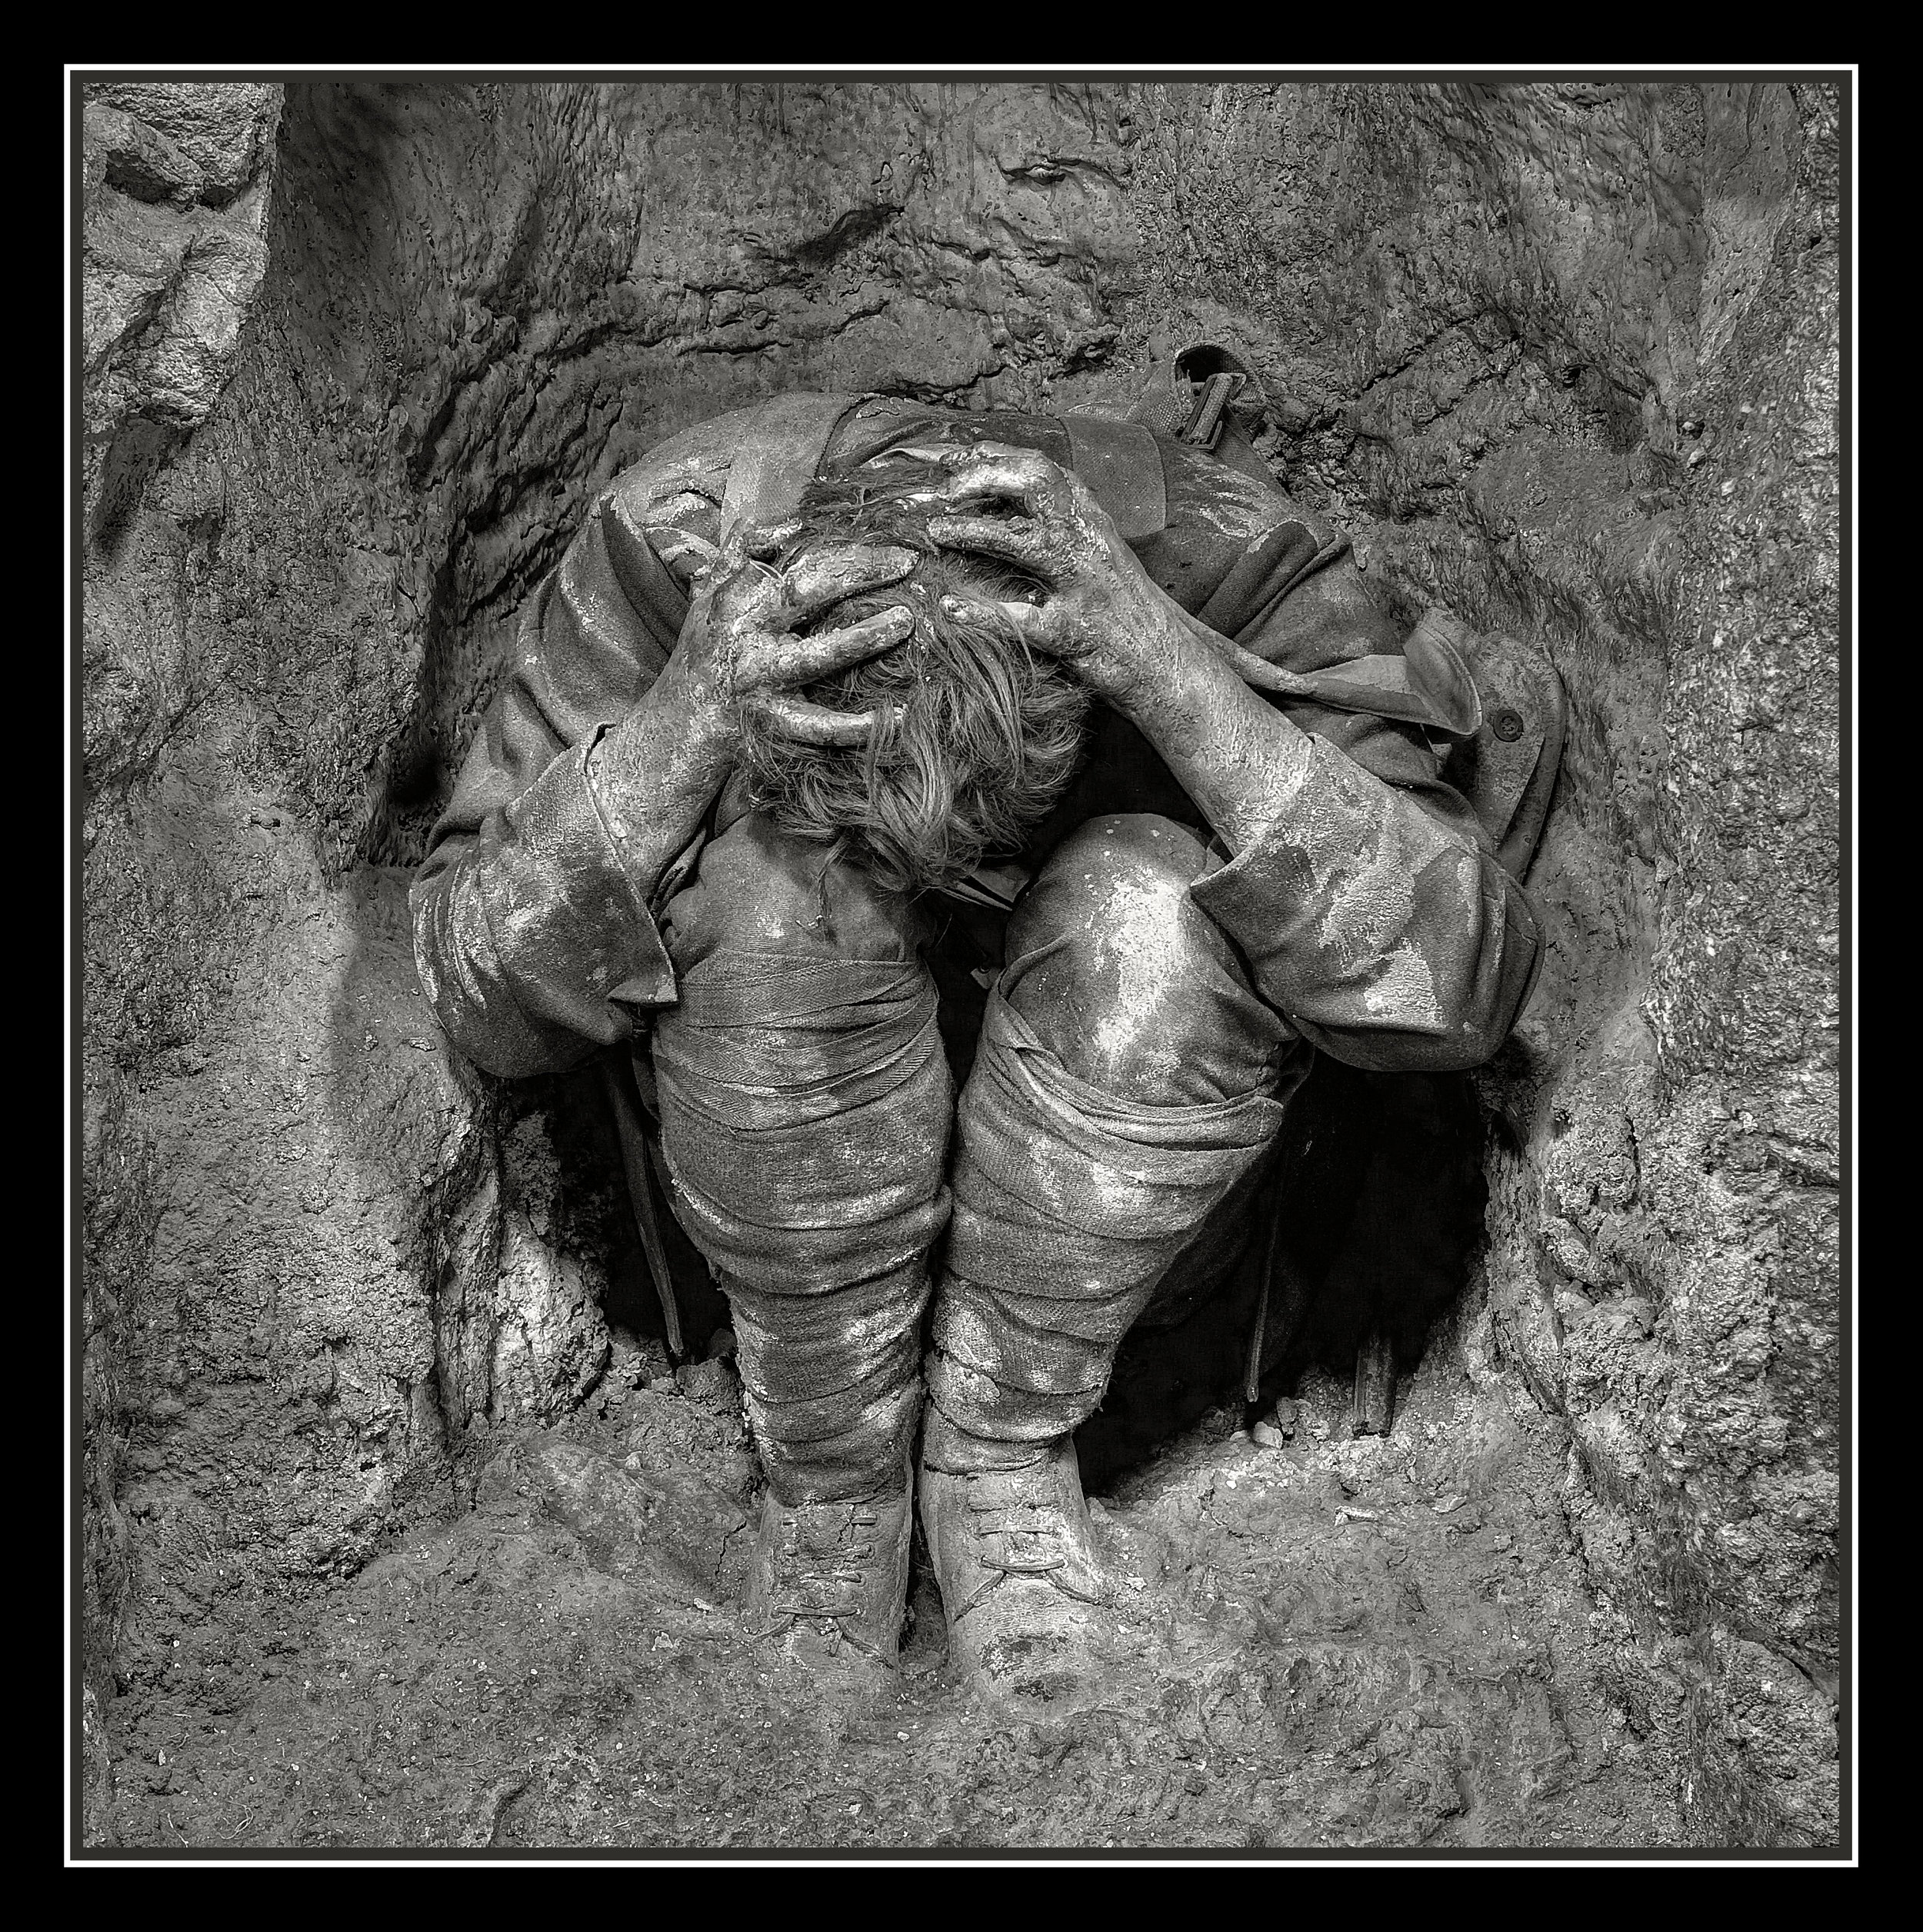 A Soldier with PTSD Fell in a Hole...